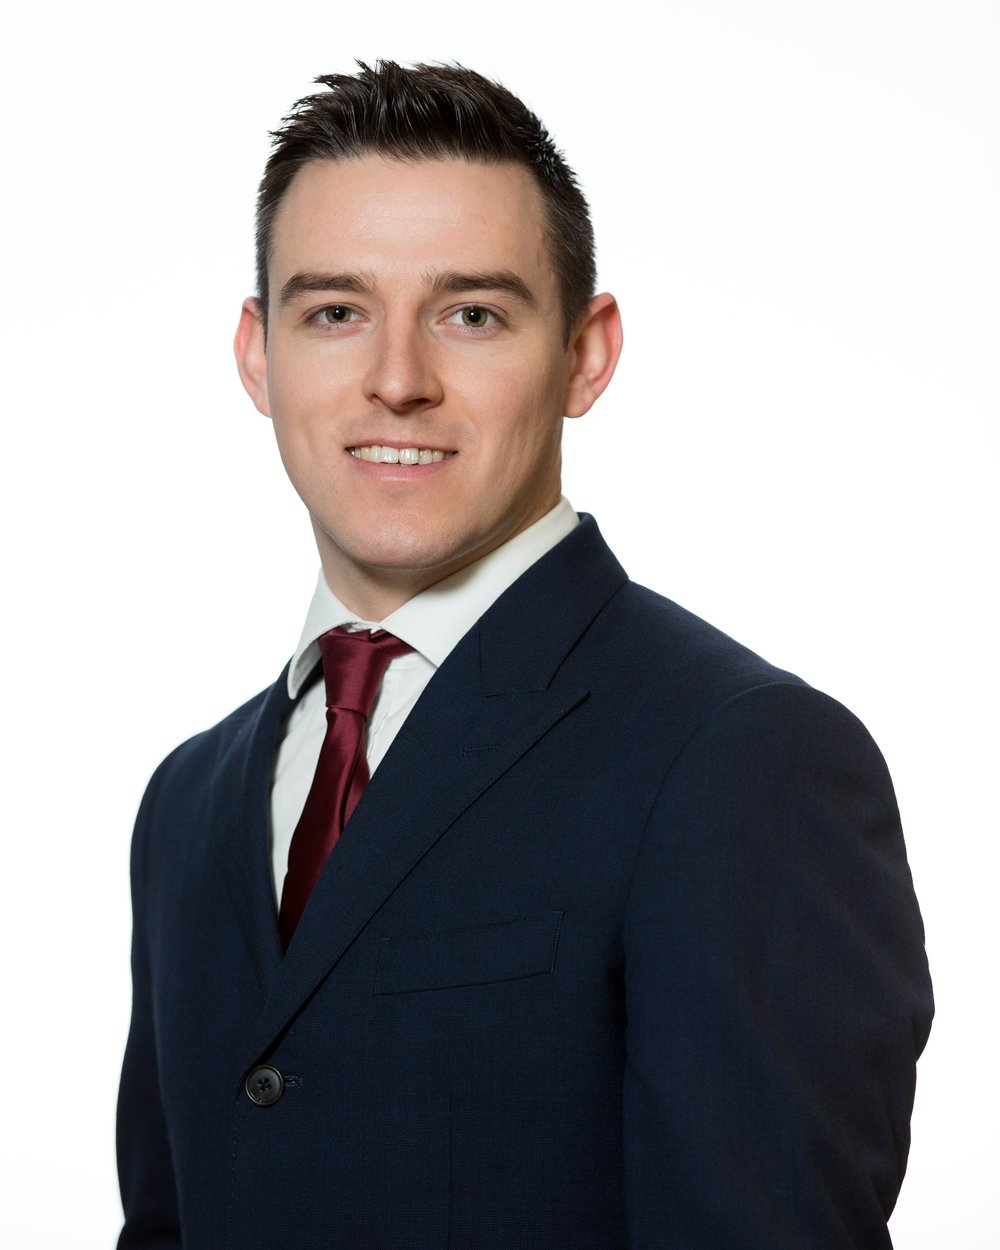 COLM BARRY    ASSOCIATE    COLM.BARRY@CSCONSULTING.IE